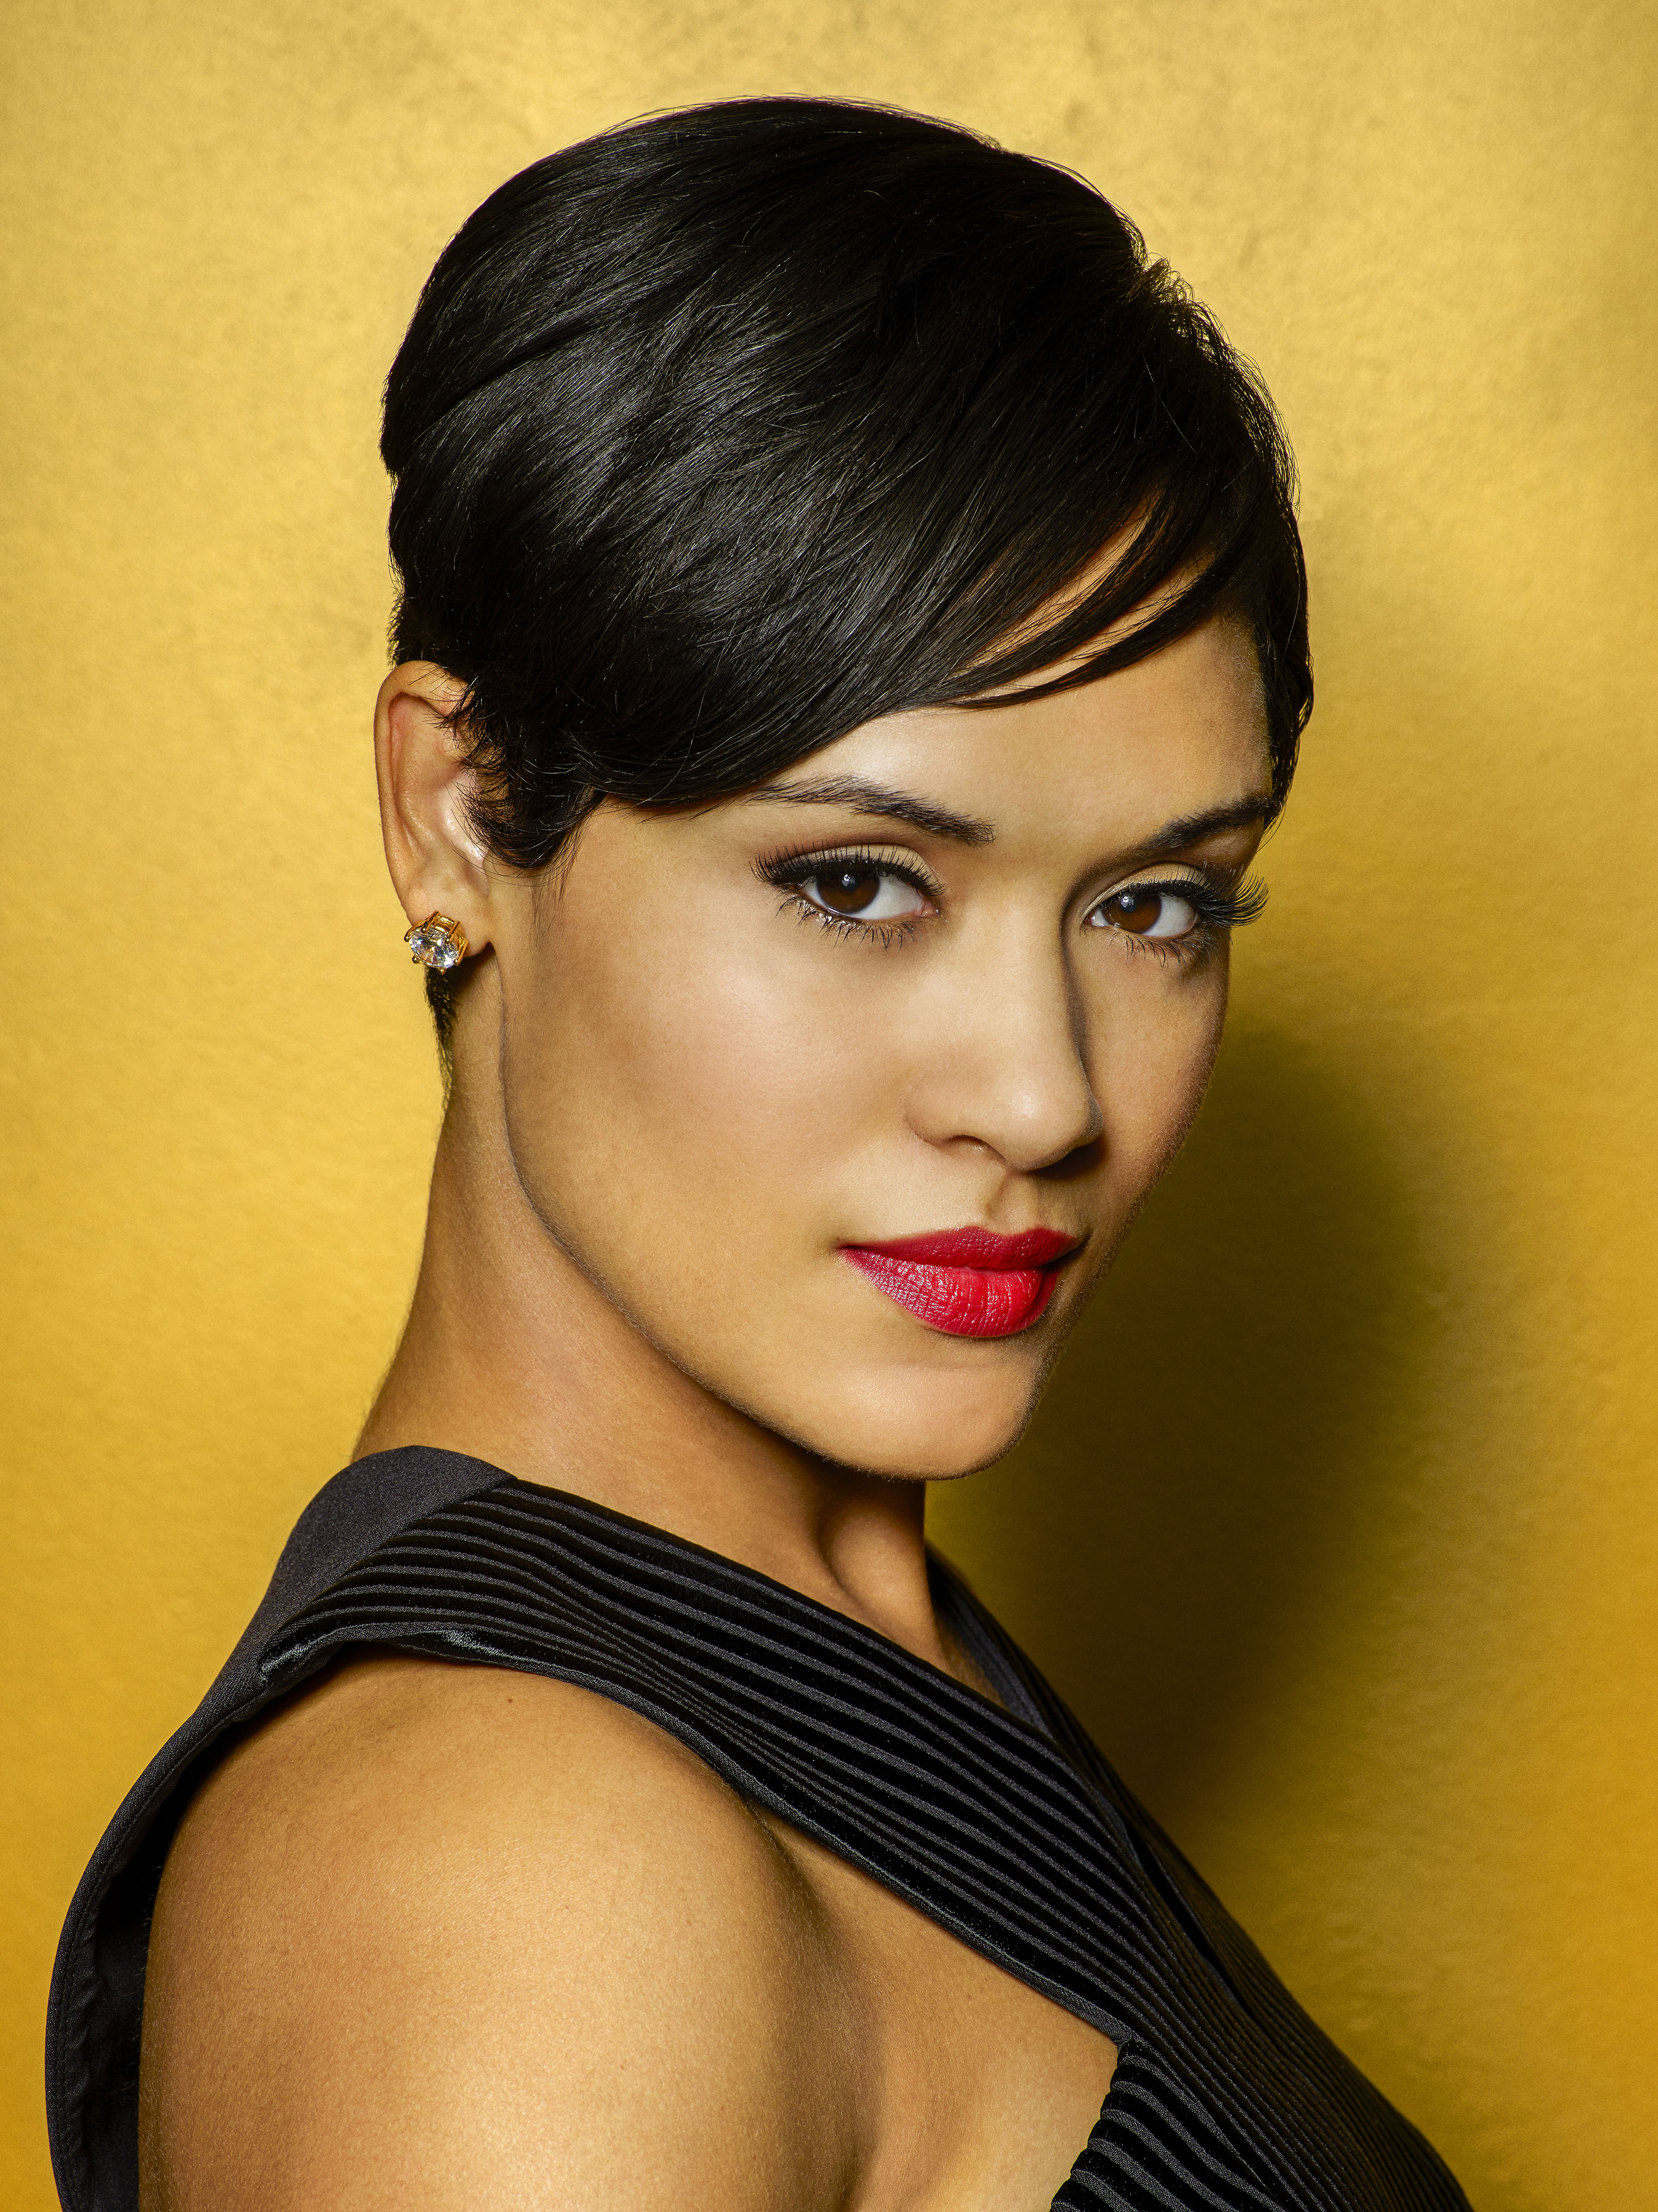 TV Actress Grace Gealey - age: 36